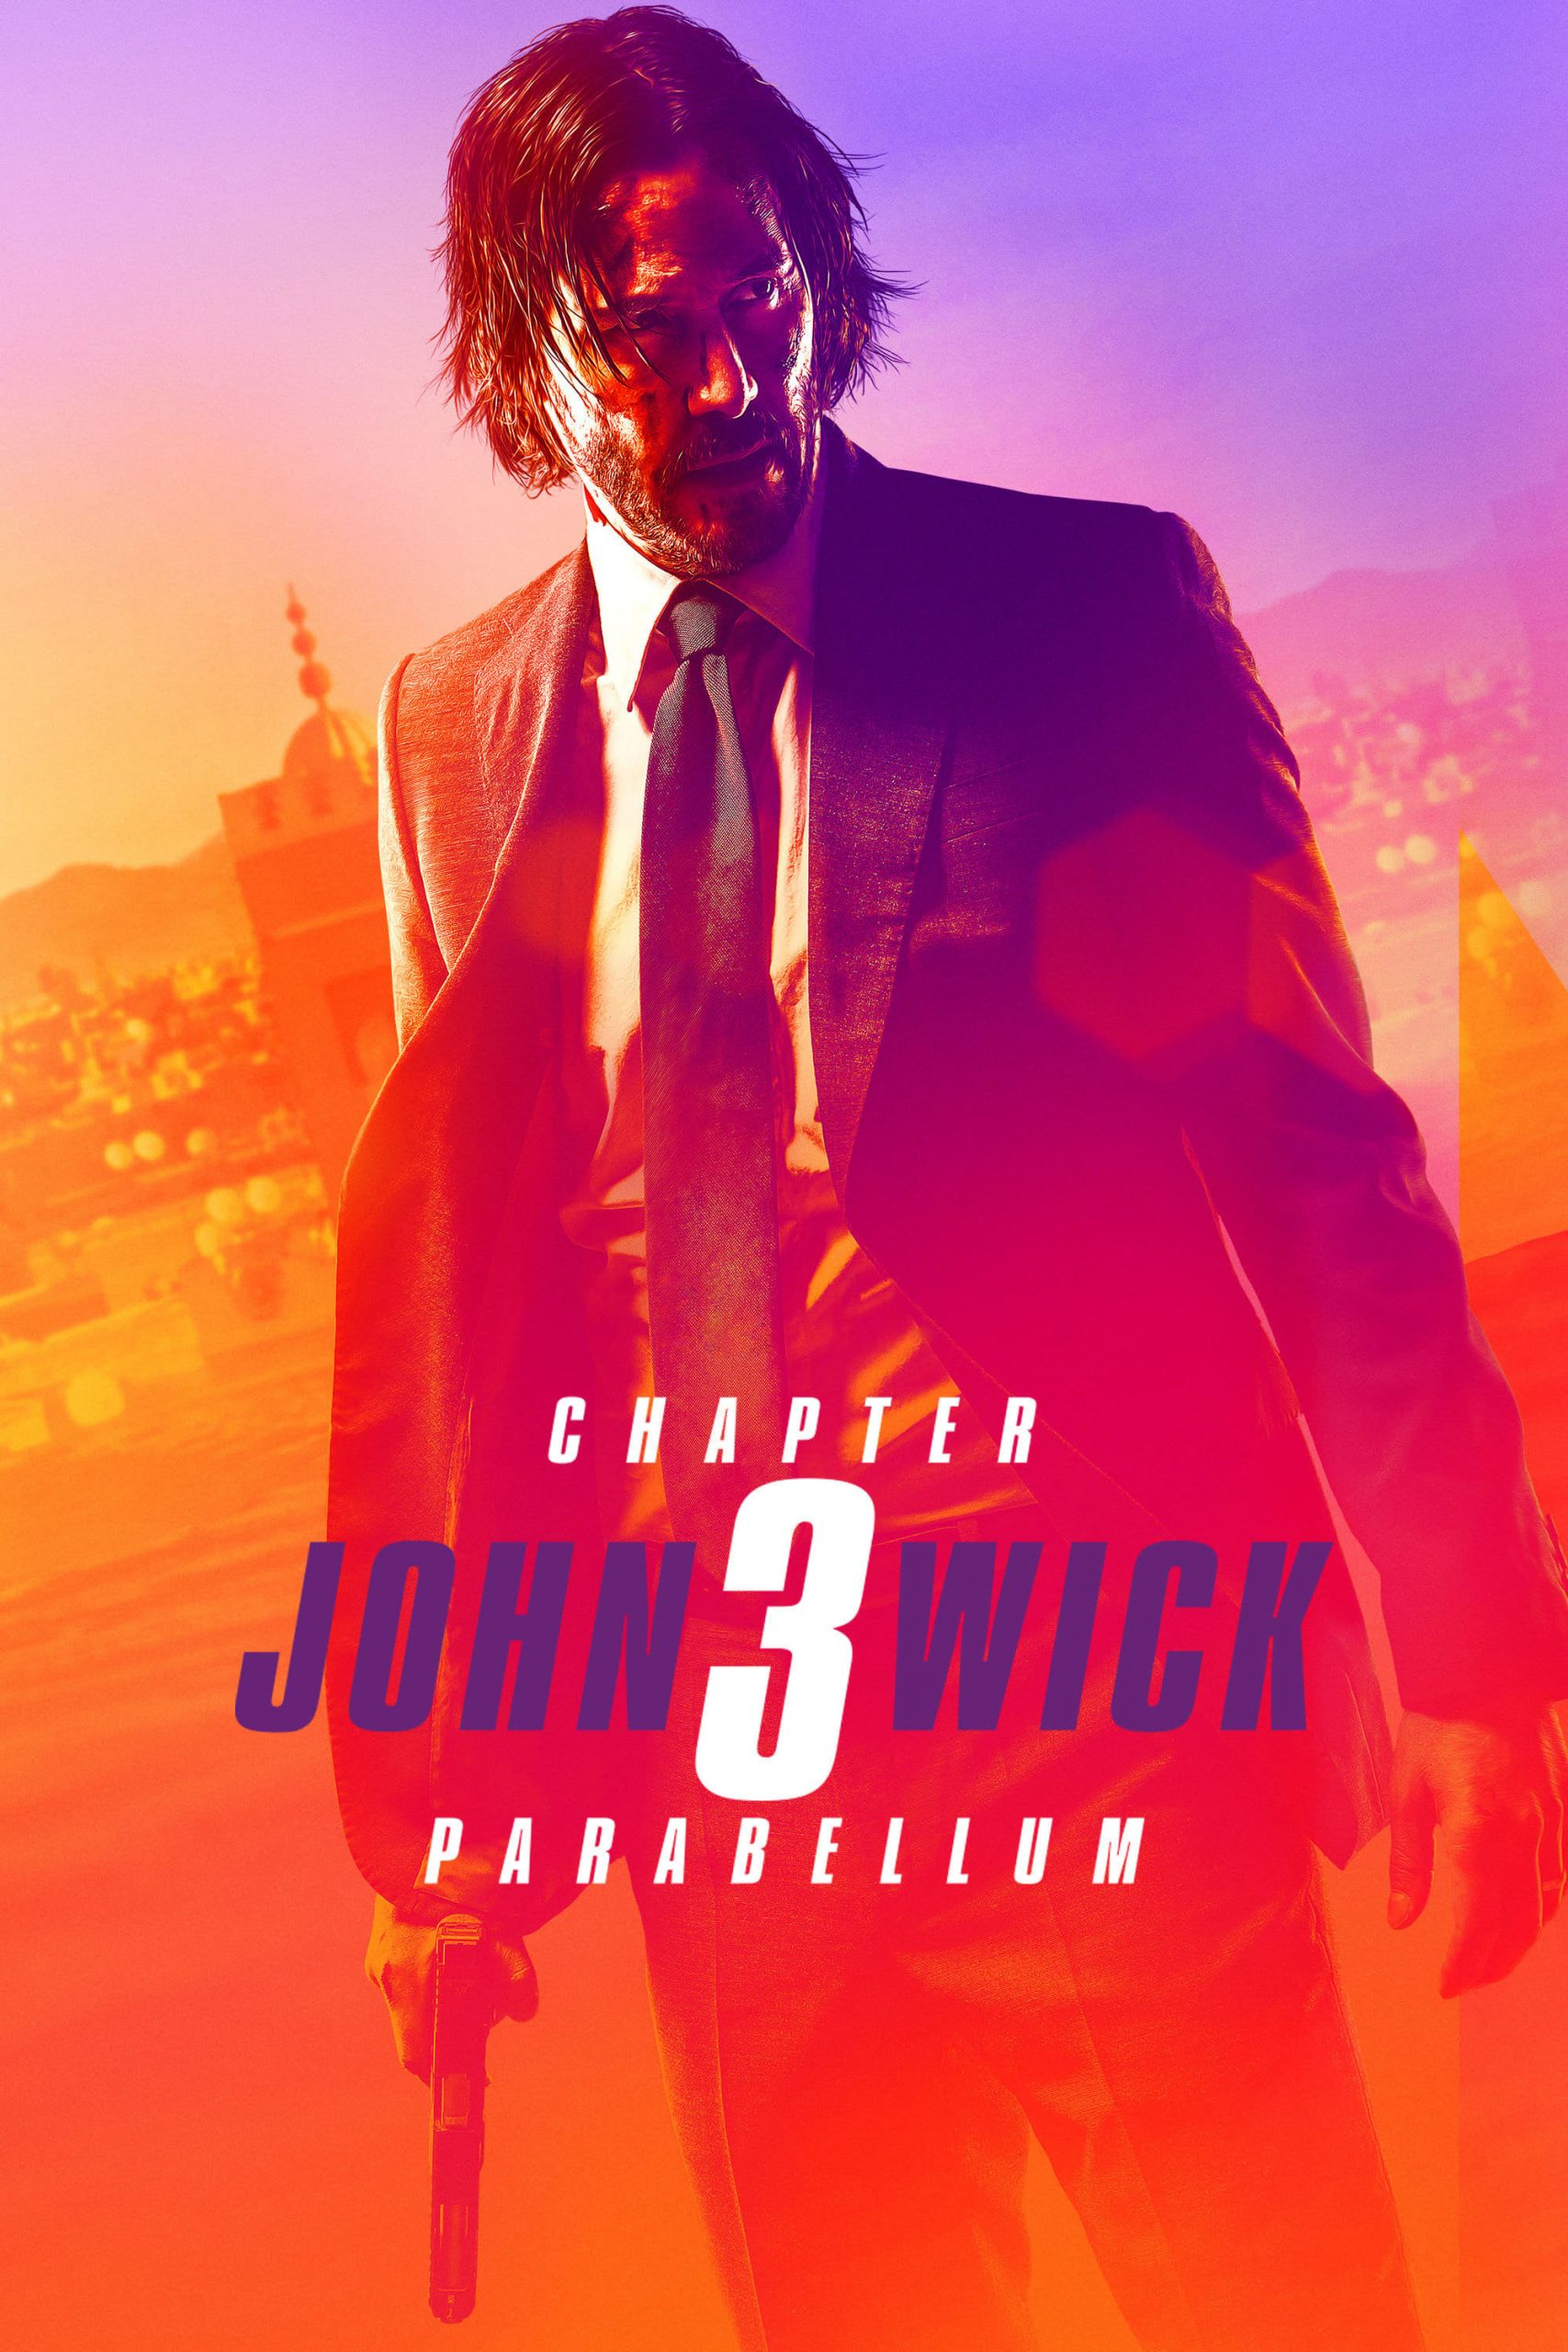 I finally saw John Wick 3